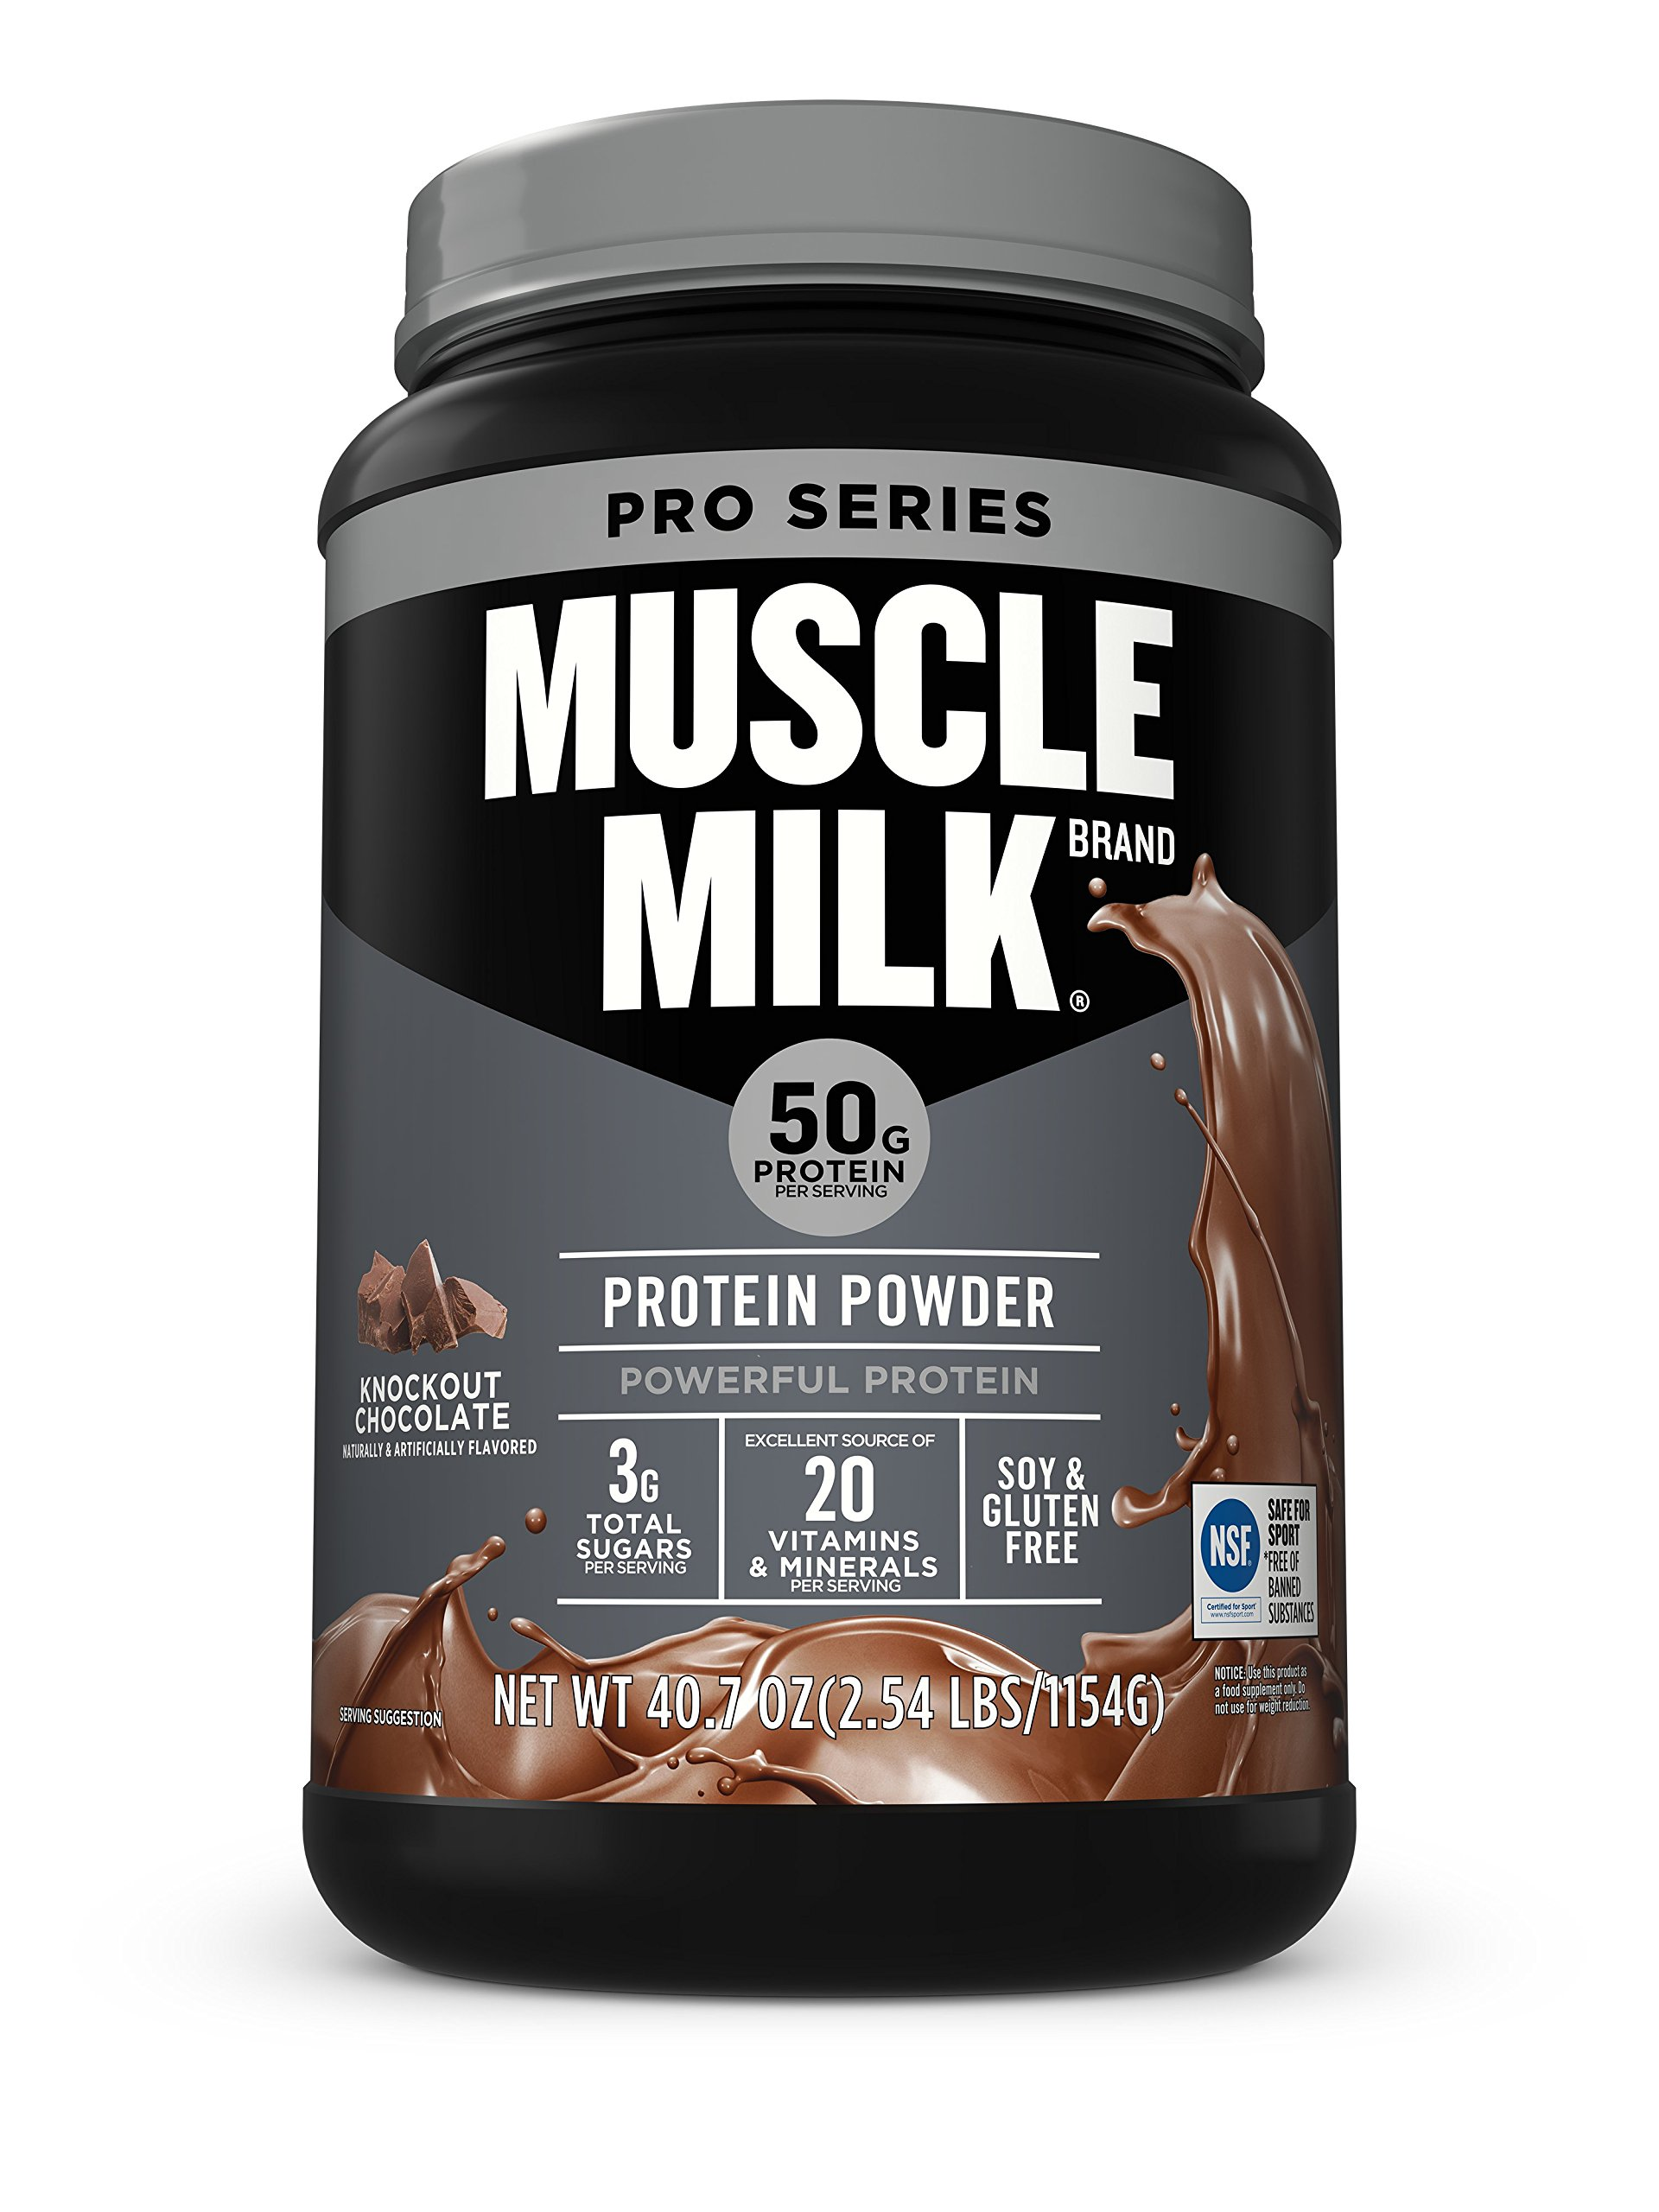 Muscle Milk Pro Series Protein Powder, Knockout Chocolate, 50g Protein, 2.54 Pound by Muscle Milk